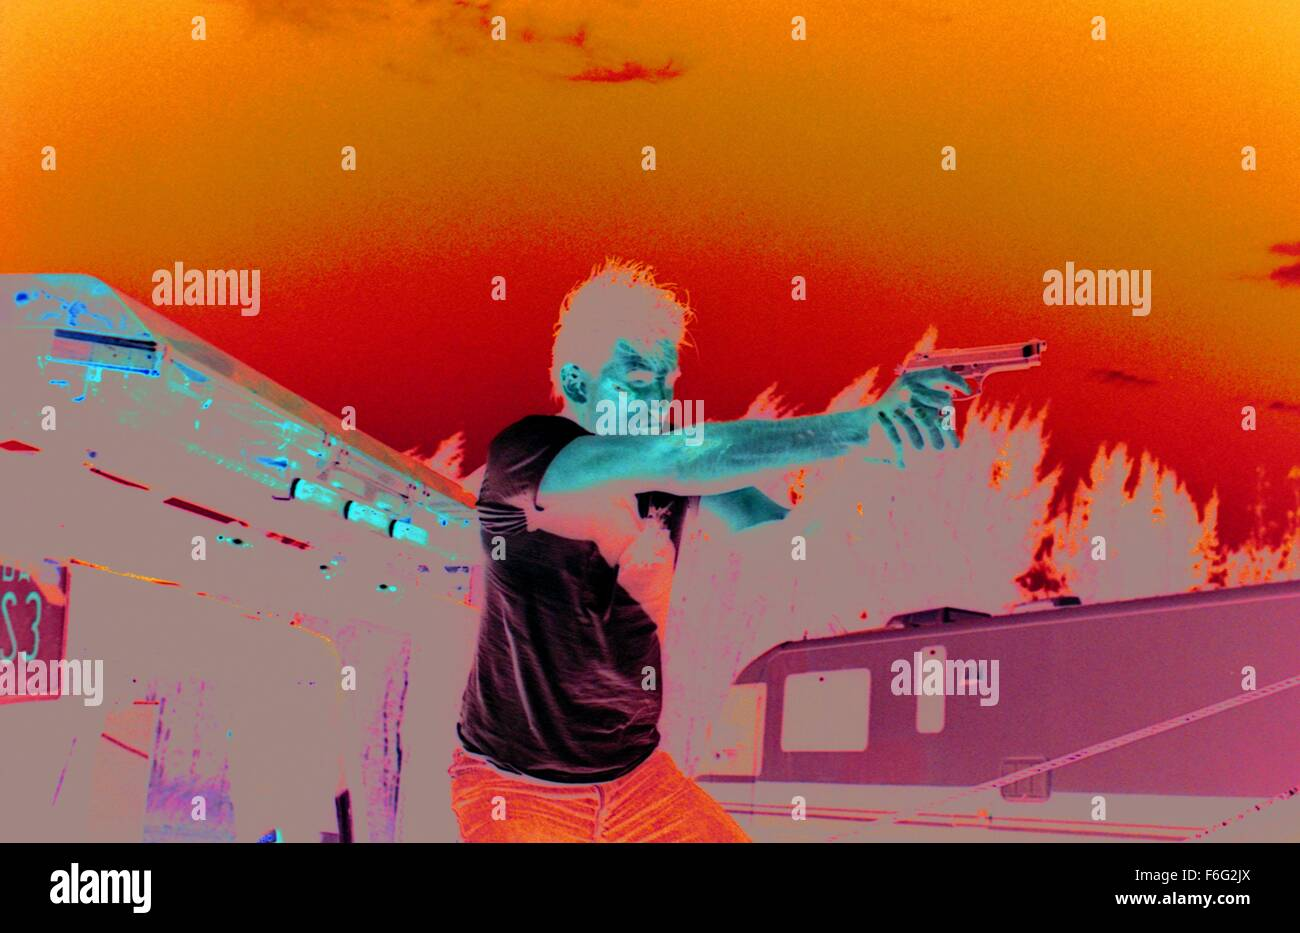 RELEASE DATE: 3 November 1995. MOVIE TITLE: Fair Game STUDIO: Silver Pictures. PLOT: Max Kirkpatrick is a cop who - Stock Image